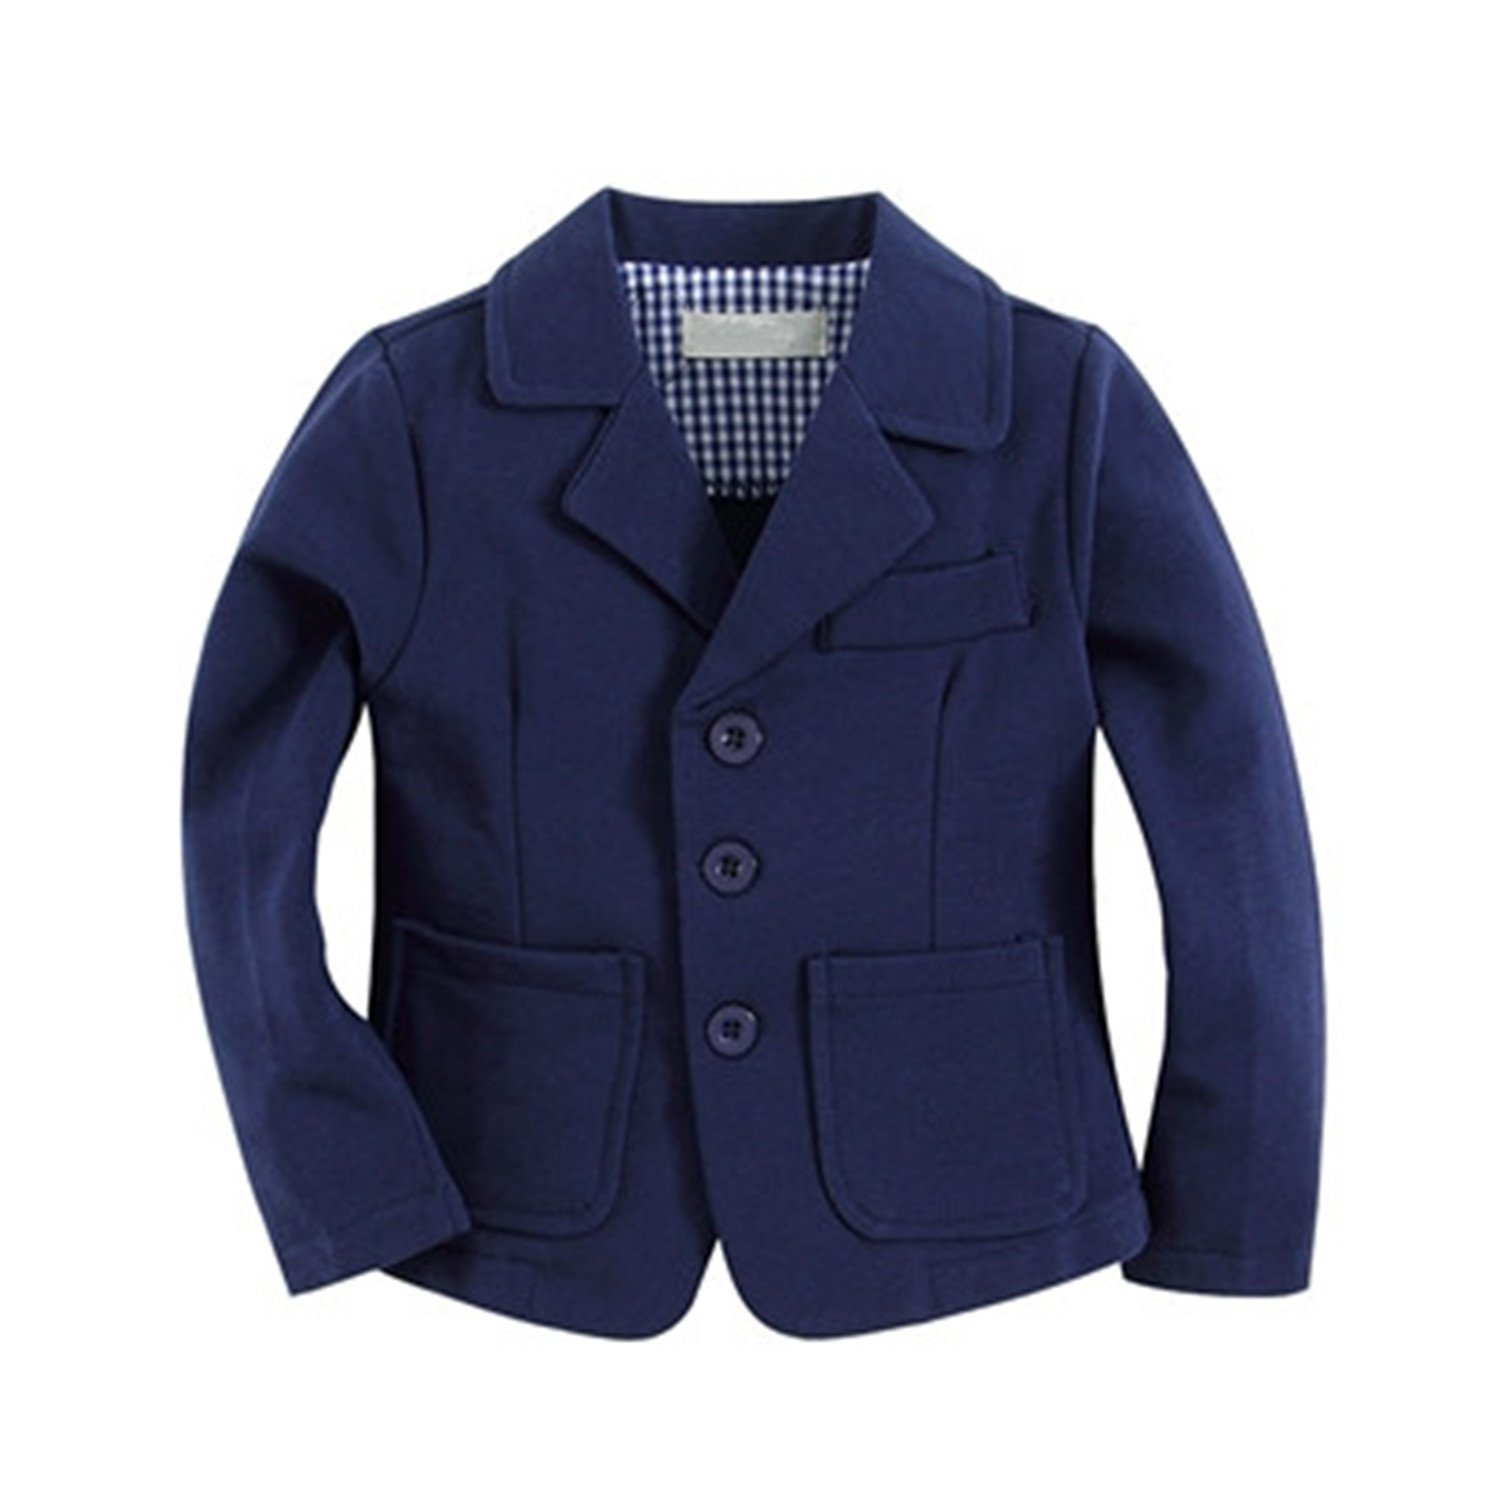 961b6cee2 Cheap Toddler Boy Blazer Jacket